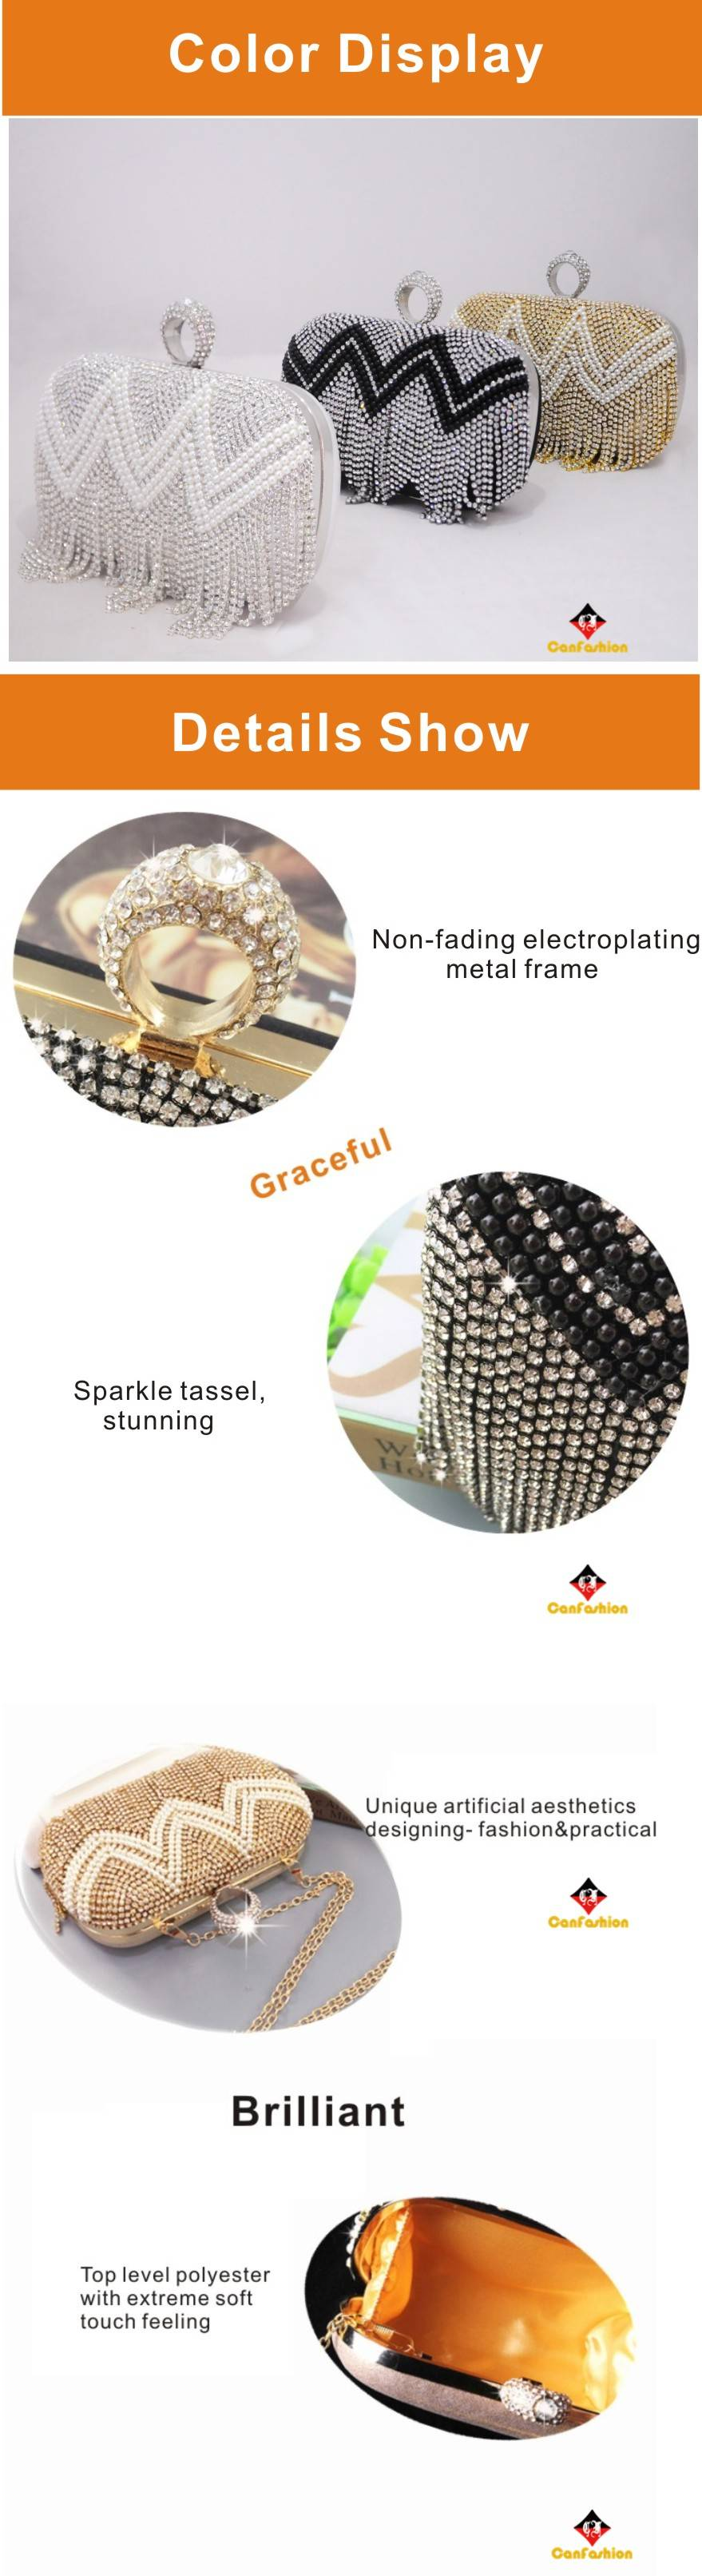 Brand New Dazzling Sequins Travel Cosmetic Makeup Clutch Bag Purse Evening Party Handbag